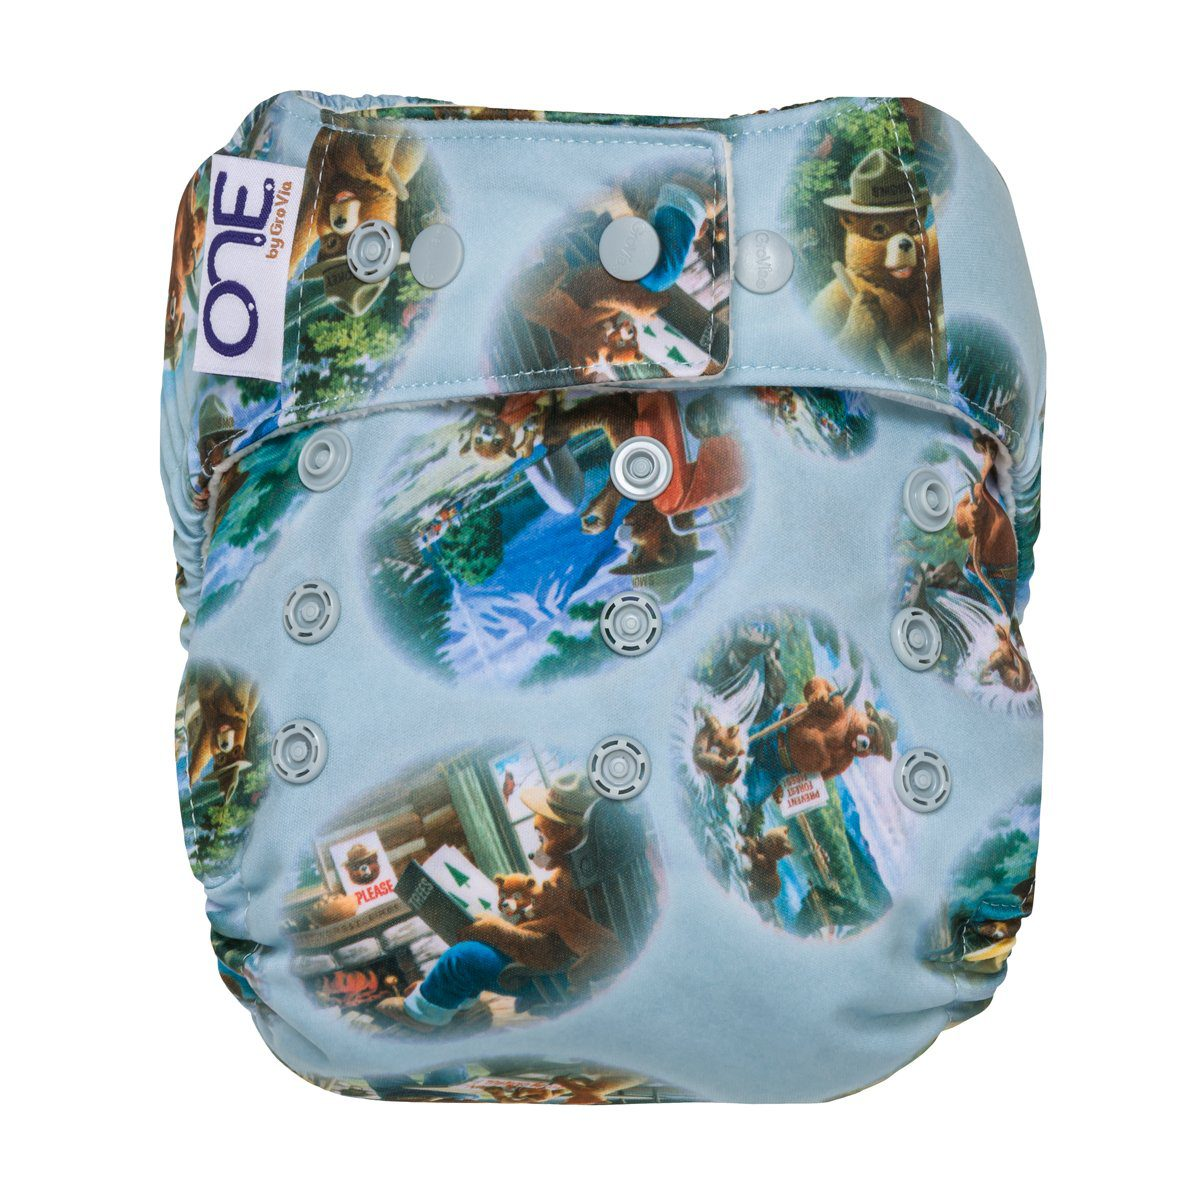 O.N.E. O.N.E. Cloth Diaper - Bear In Mind